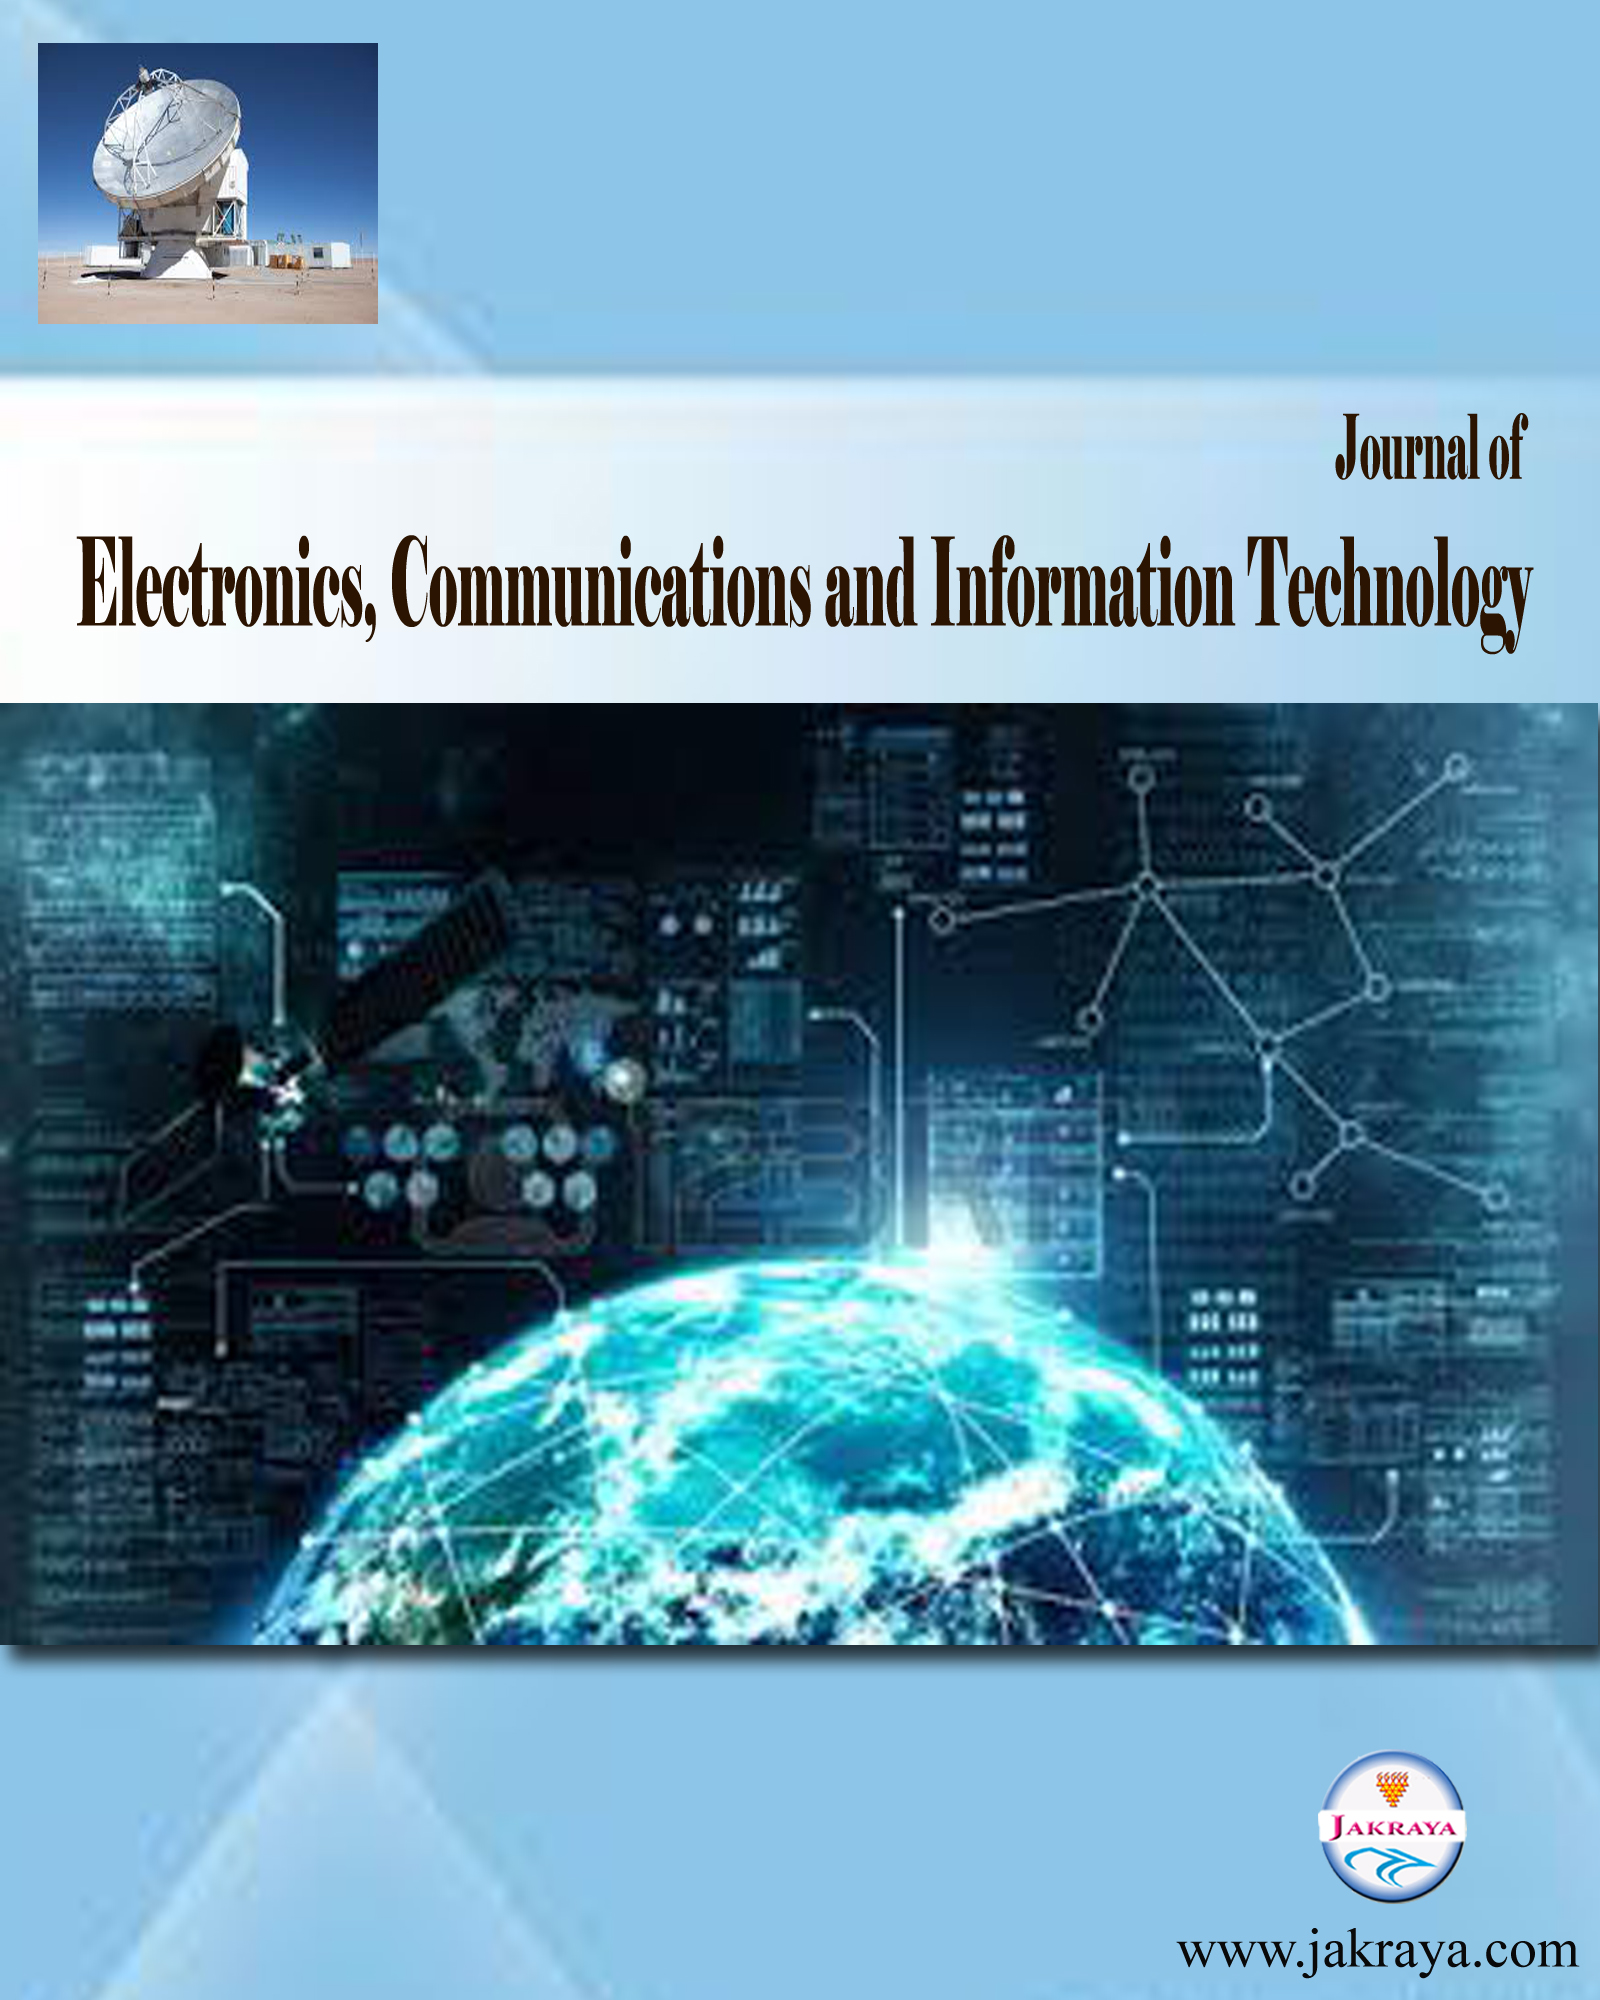 Journal of Electronics, Communications and Information Technology